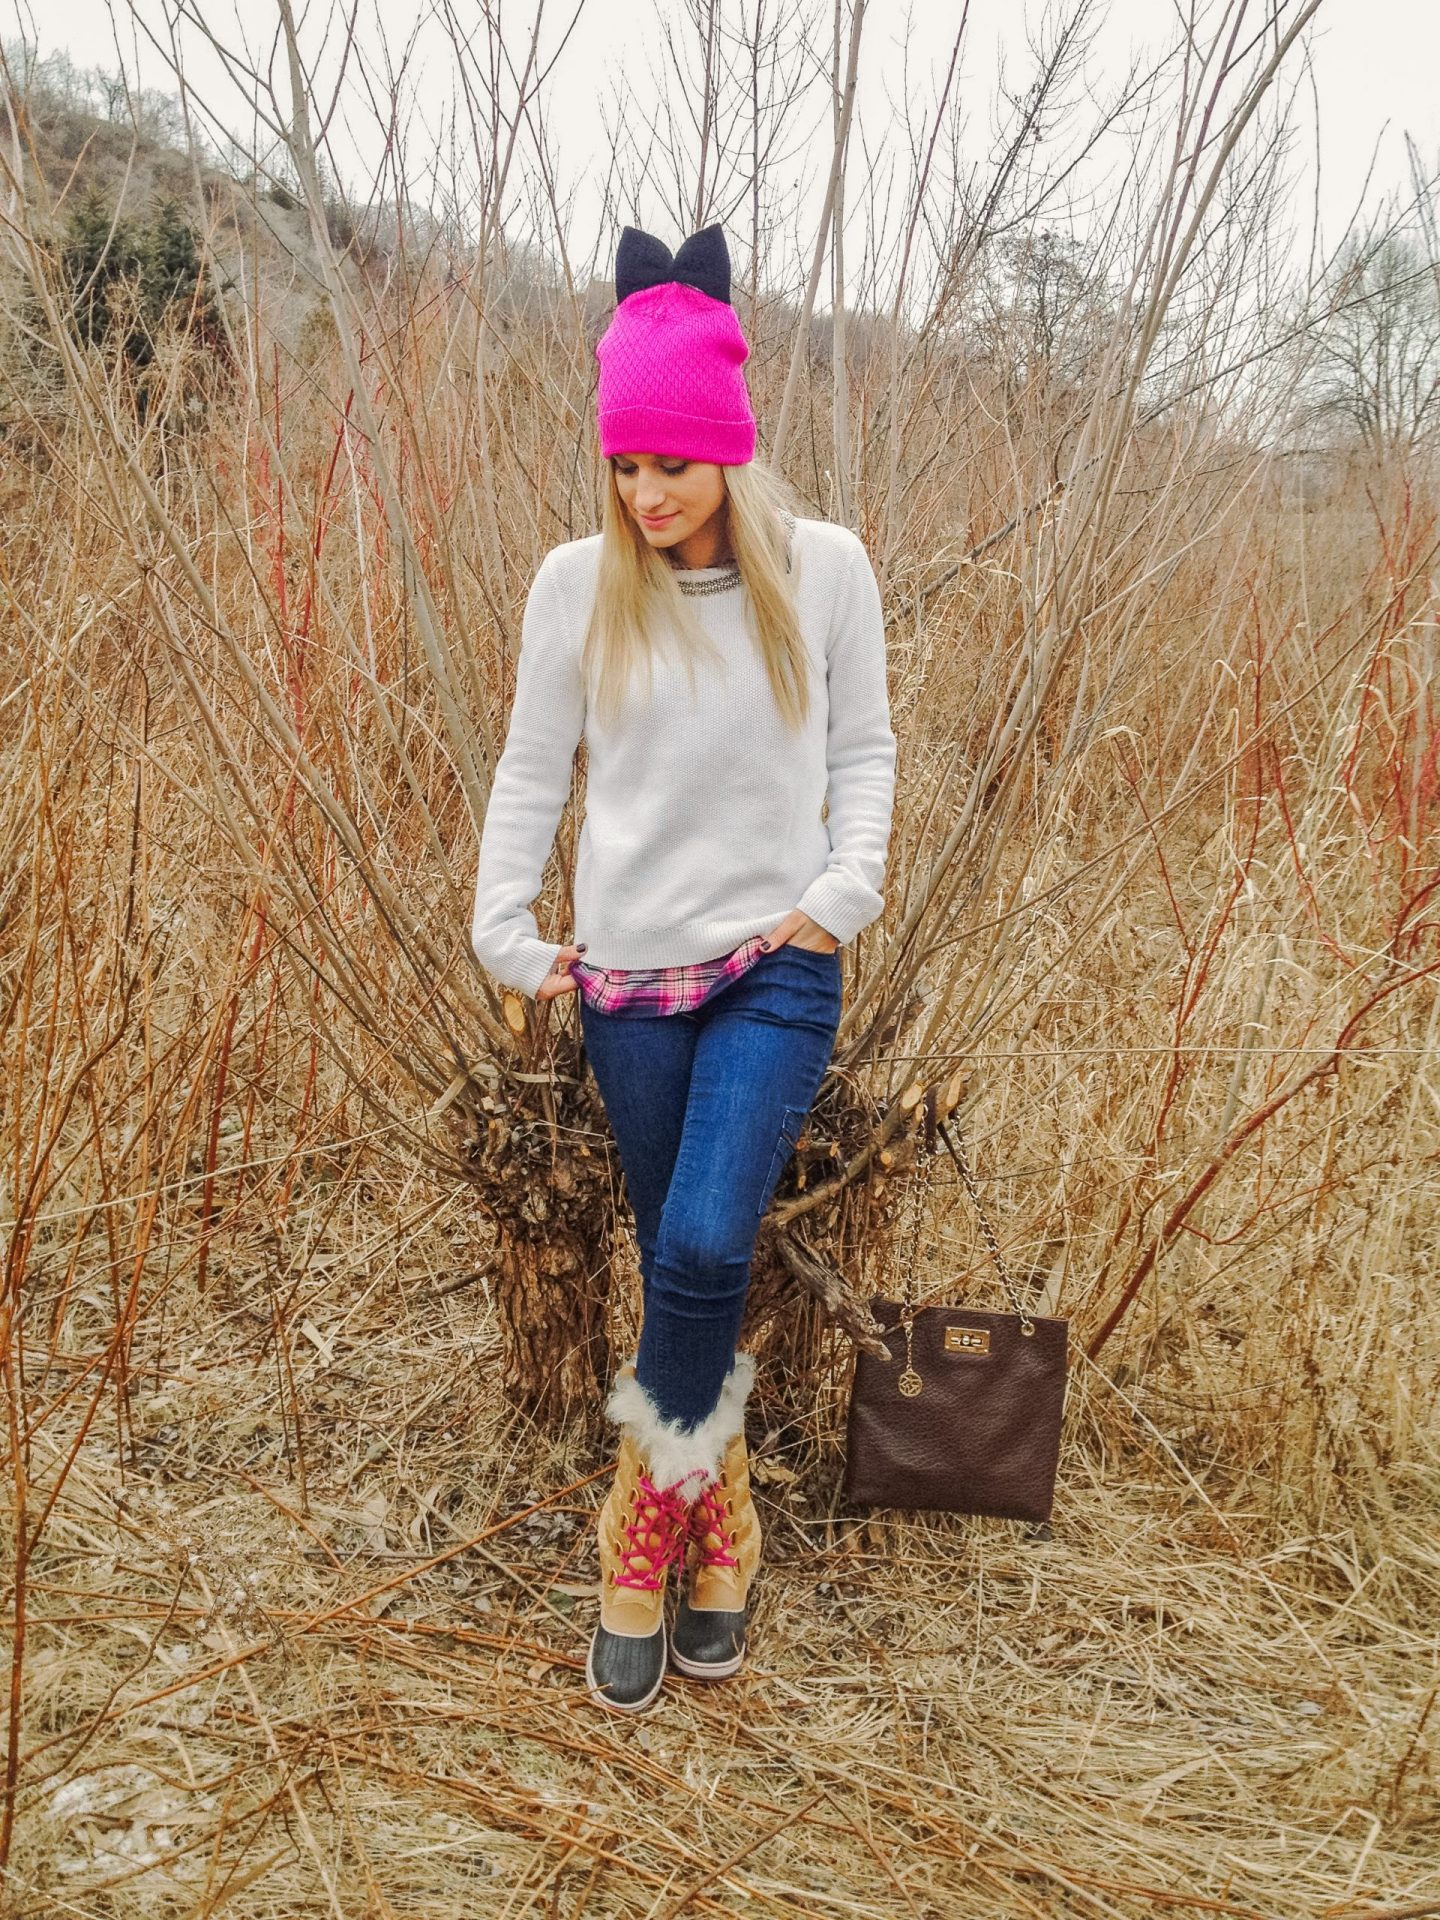 Level up your everyday winter outfit with some simple hacks